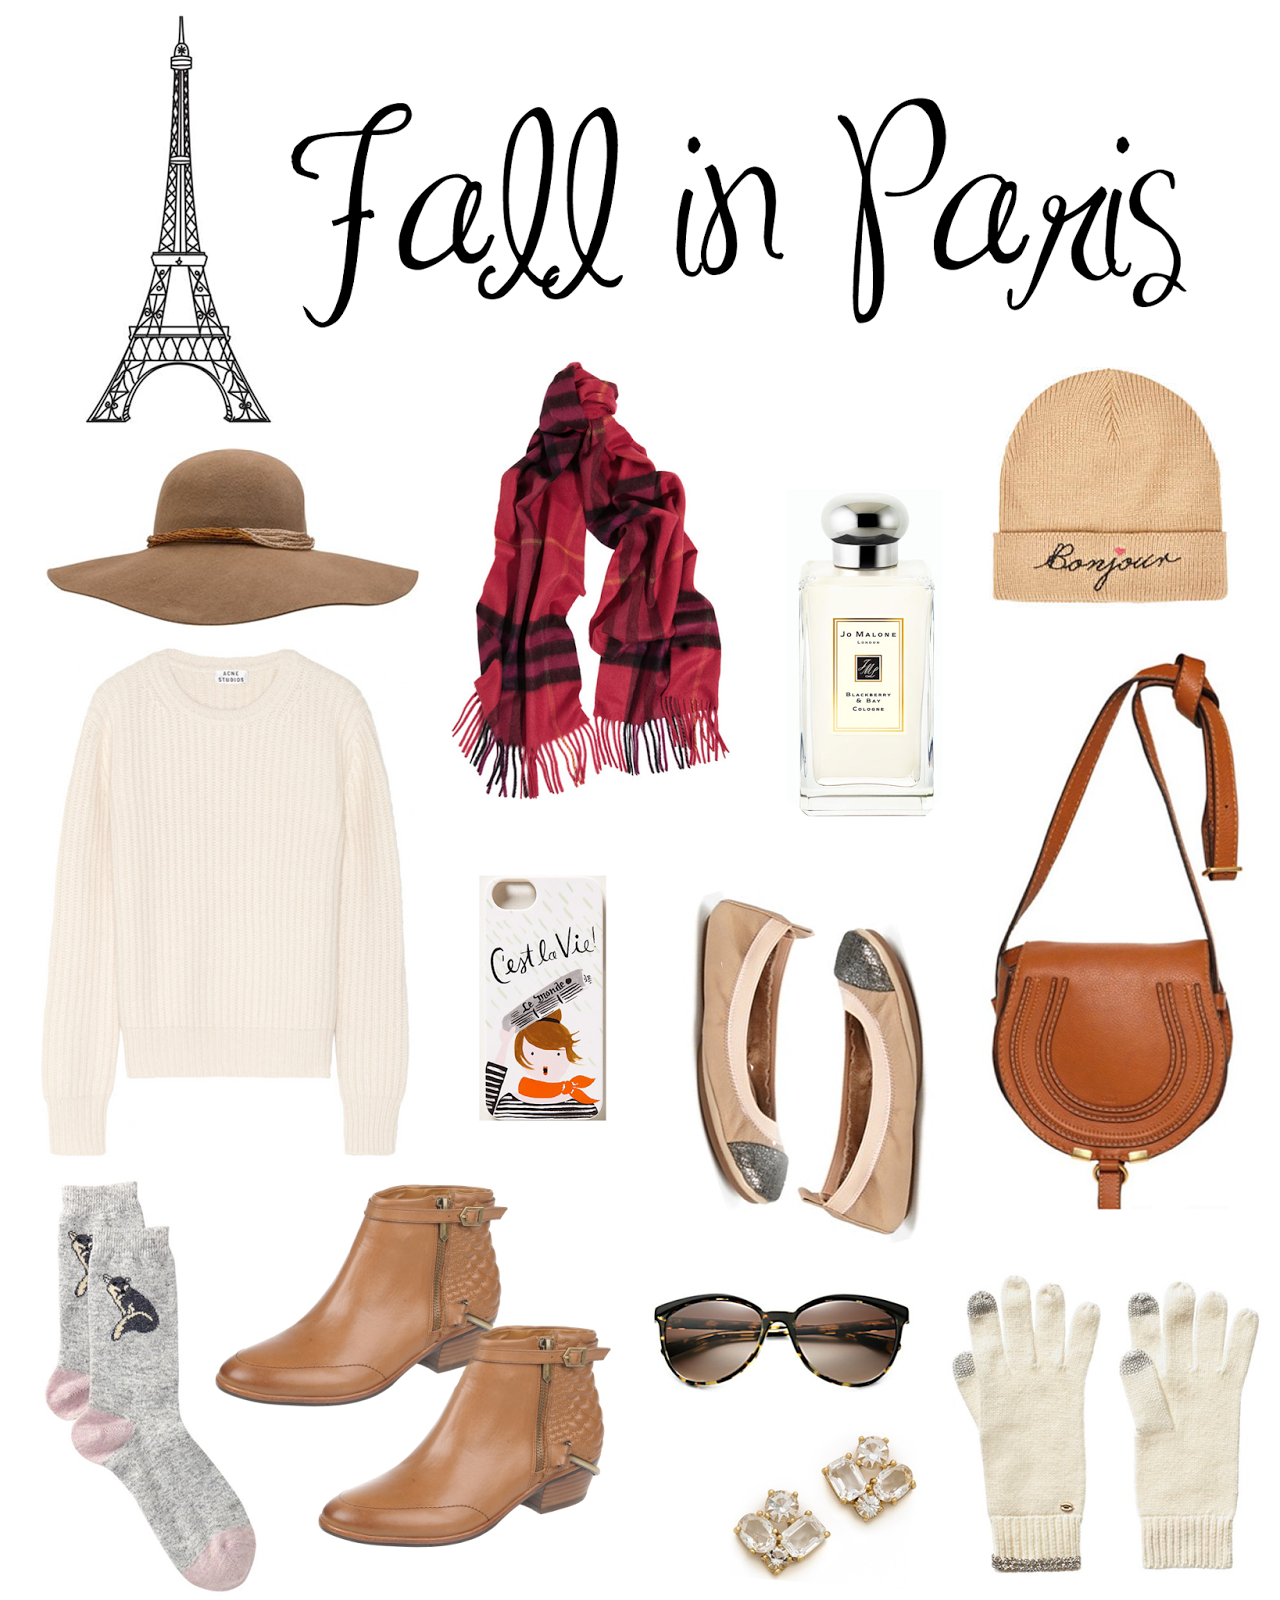 dddf165a2871b5 Boho wool floppy brimmed hat {here} // Cashmere Burberry scarf in a  beautiful rich hue {here} // My all time favie Jo Malone scent {view here}  // Adorable ' ...